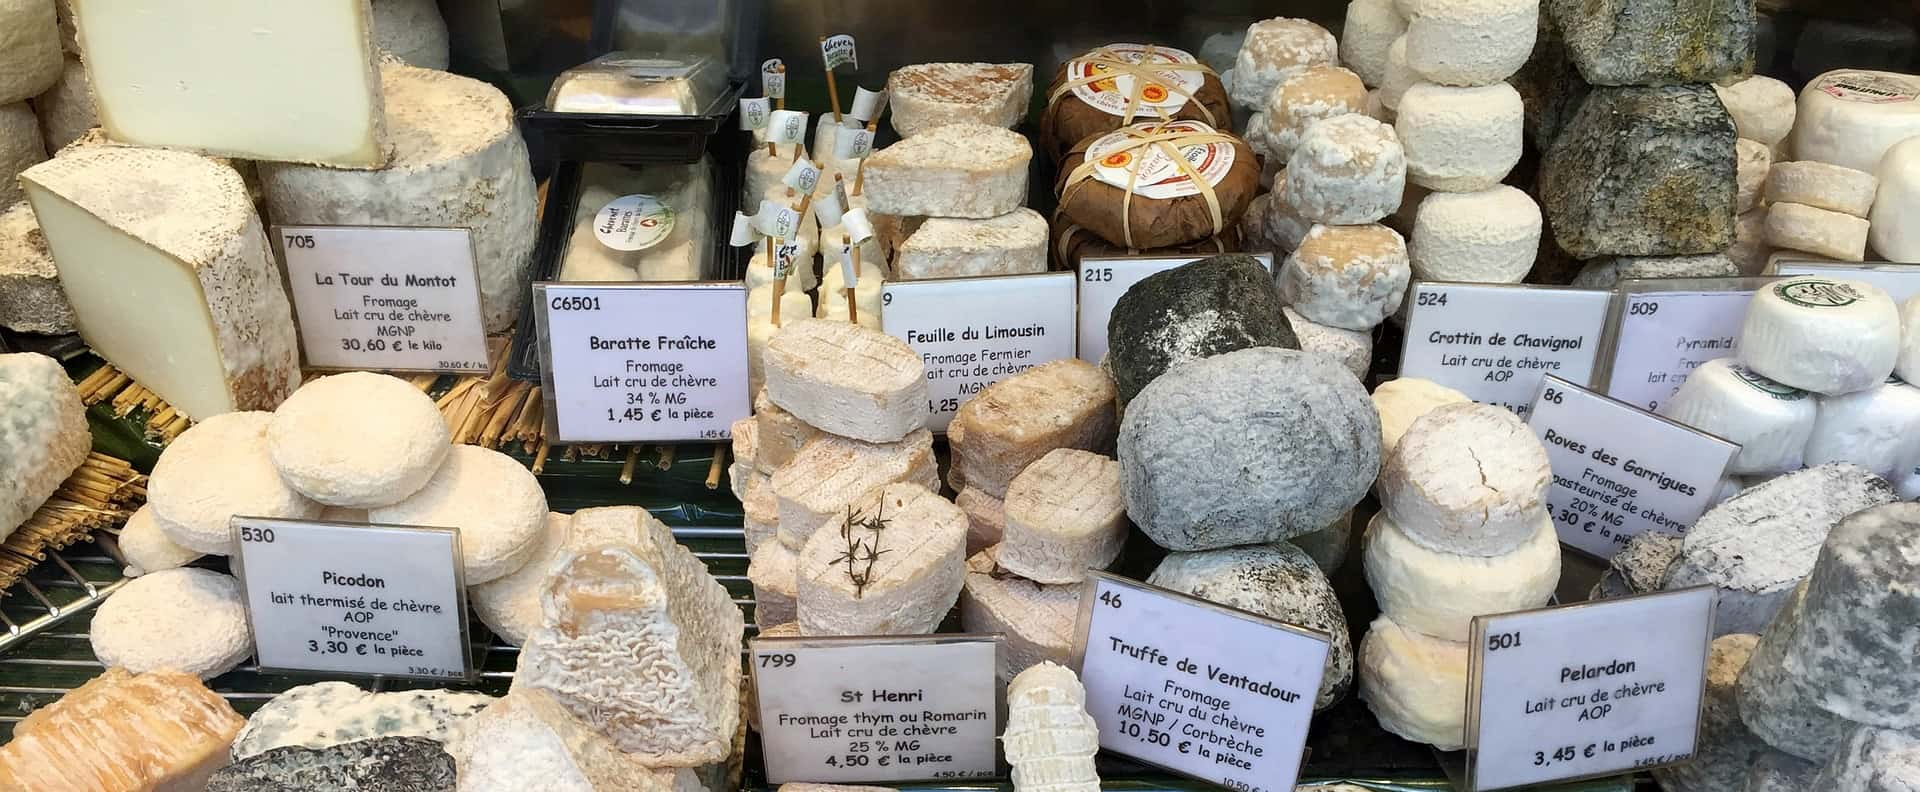 our secret Paris tip: get some cheese in Paris from Fromagerie Quatrehomme Eatin cheese in Paris is not one of the hidden things to do in Paris - but finding a good fromagerie is like finding the secret of Paris - get to know the hidden Paris for cheese lovers